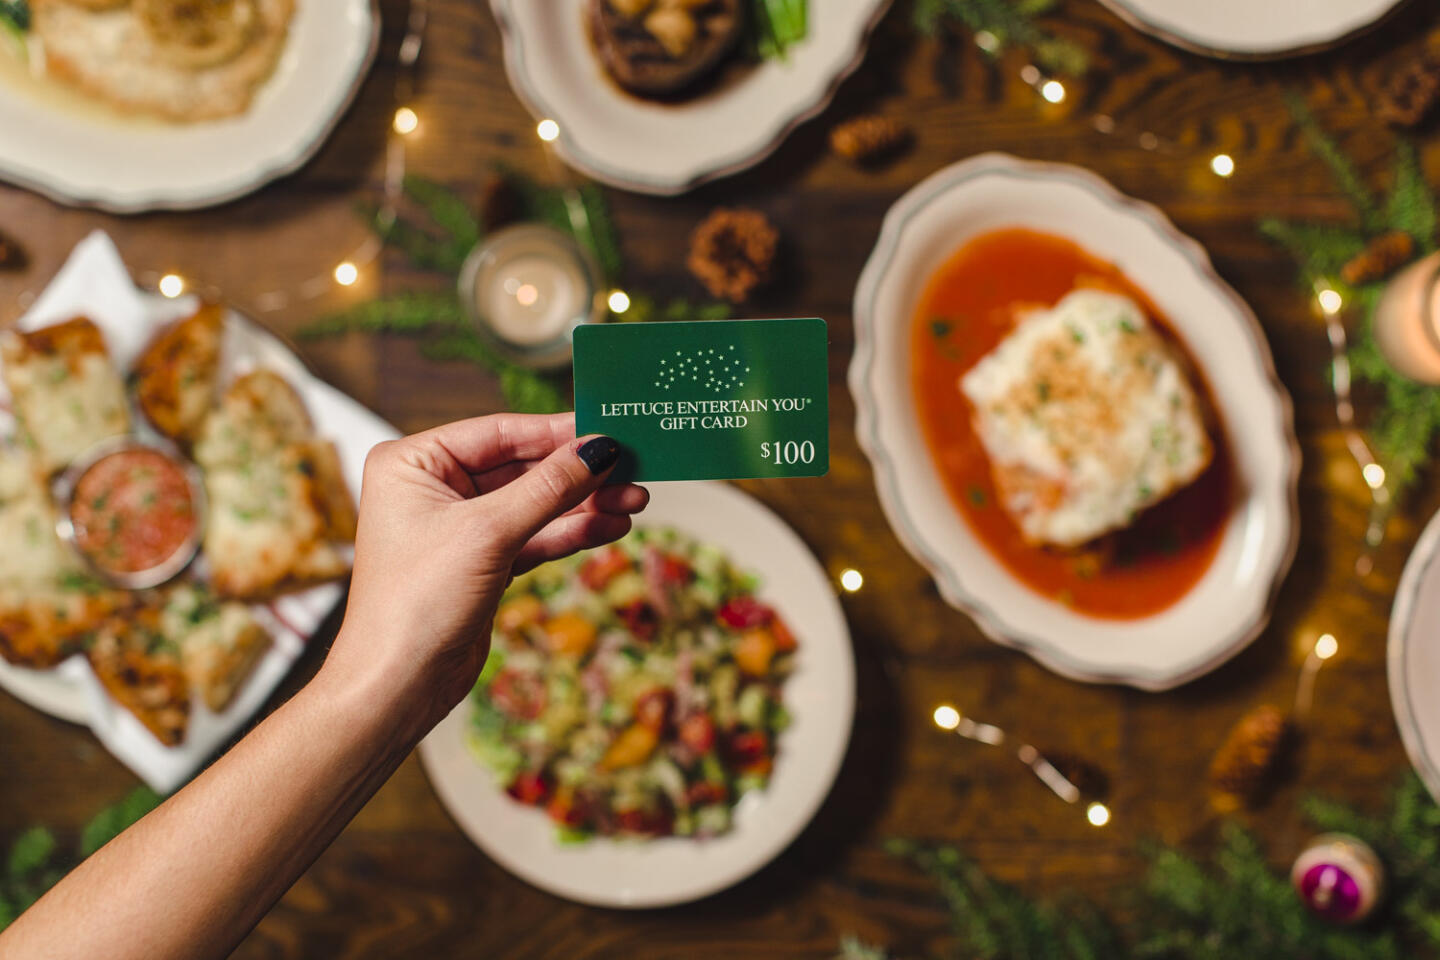 Lettuce Entertain You Gift Cards at il porcellino